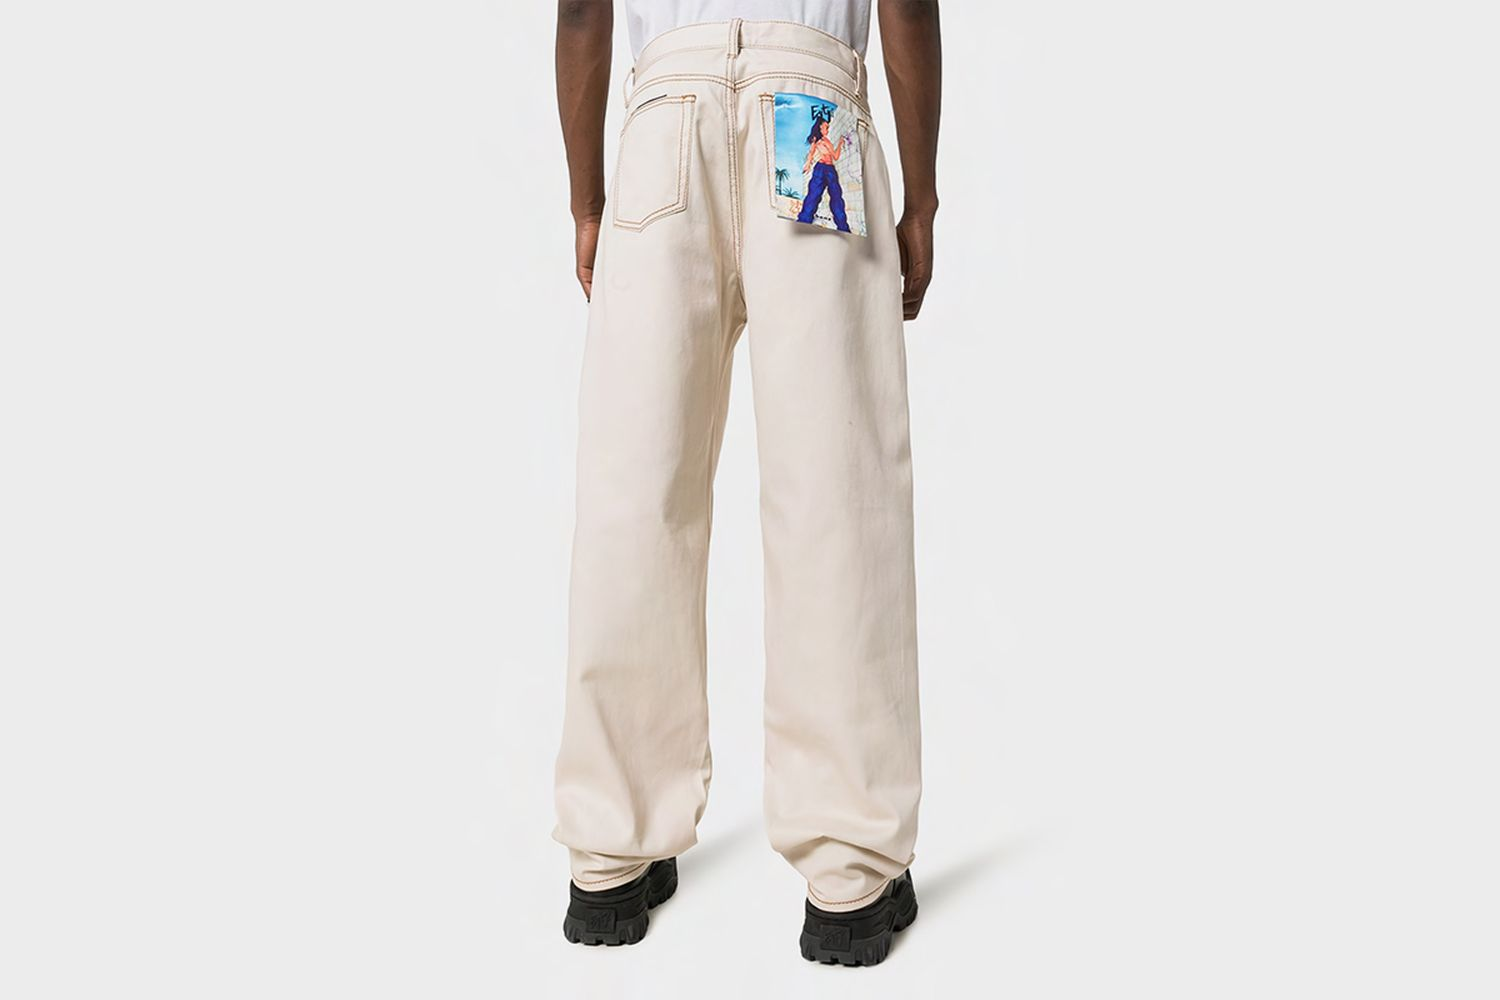 Benz Loose Fit Jeans